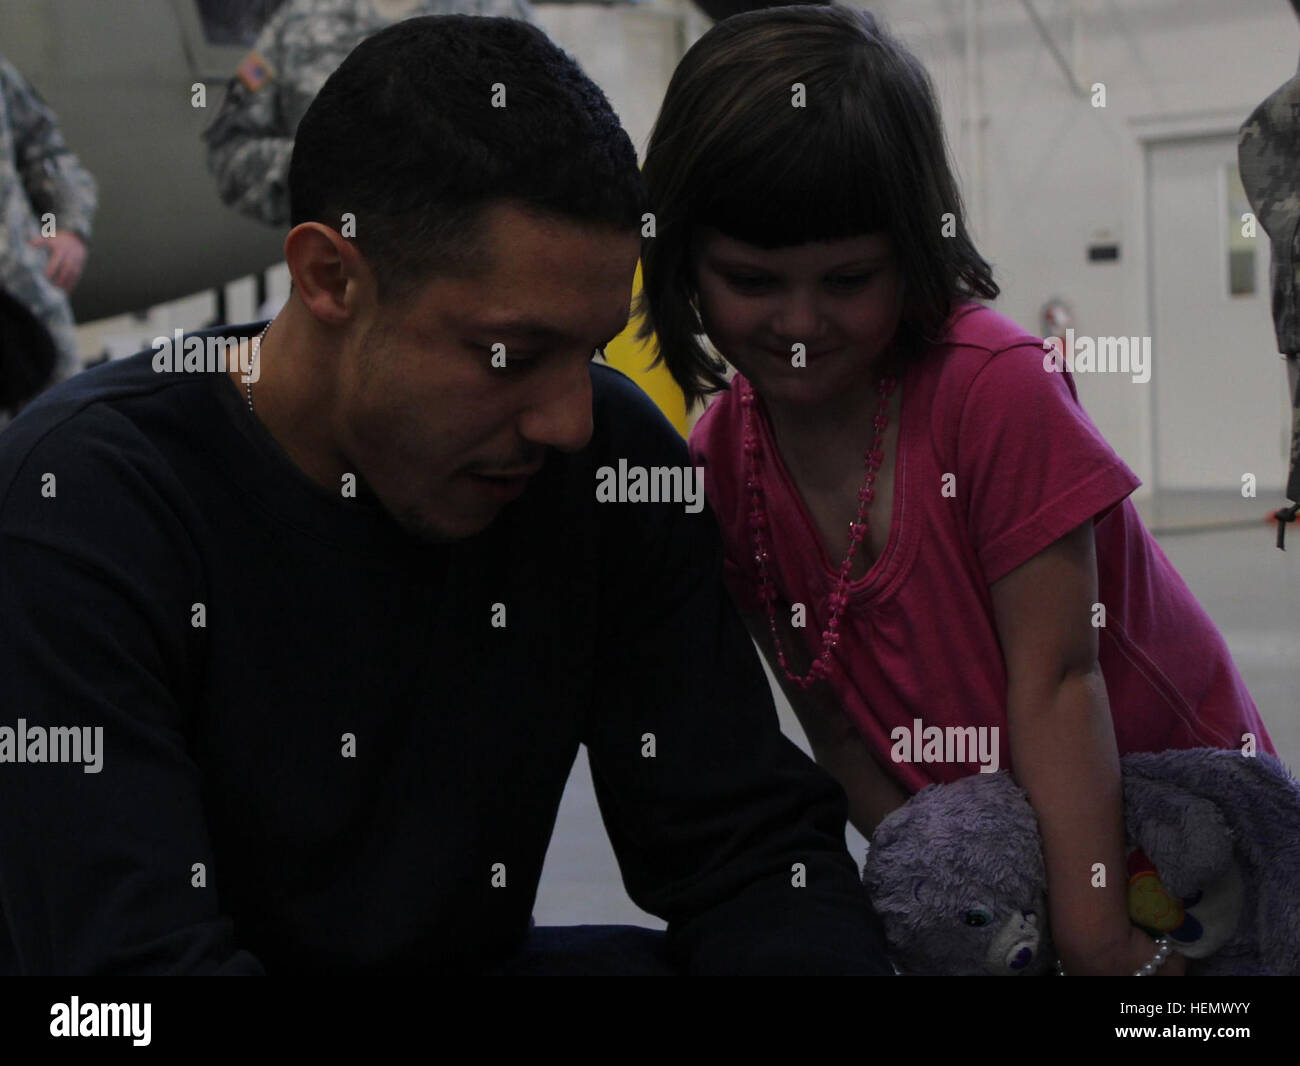 Theo rossi from the show sons of anarchy interacts with emma grim theo rossi from the show sons of anarchy interacts with emma grim 8 during a meet and greet session at one of the 1st air cavalry brigades hangars kristyandbryce Choice Image